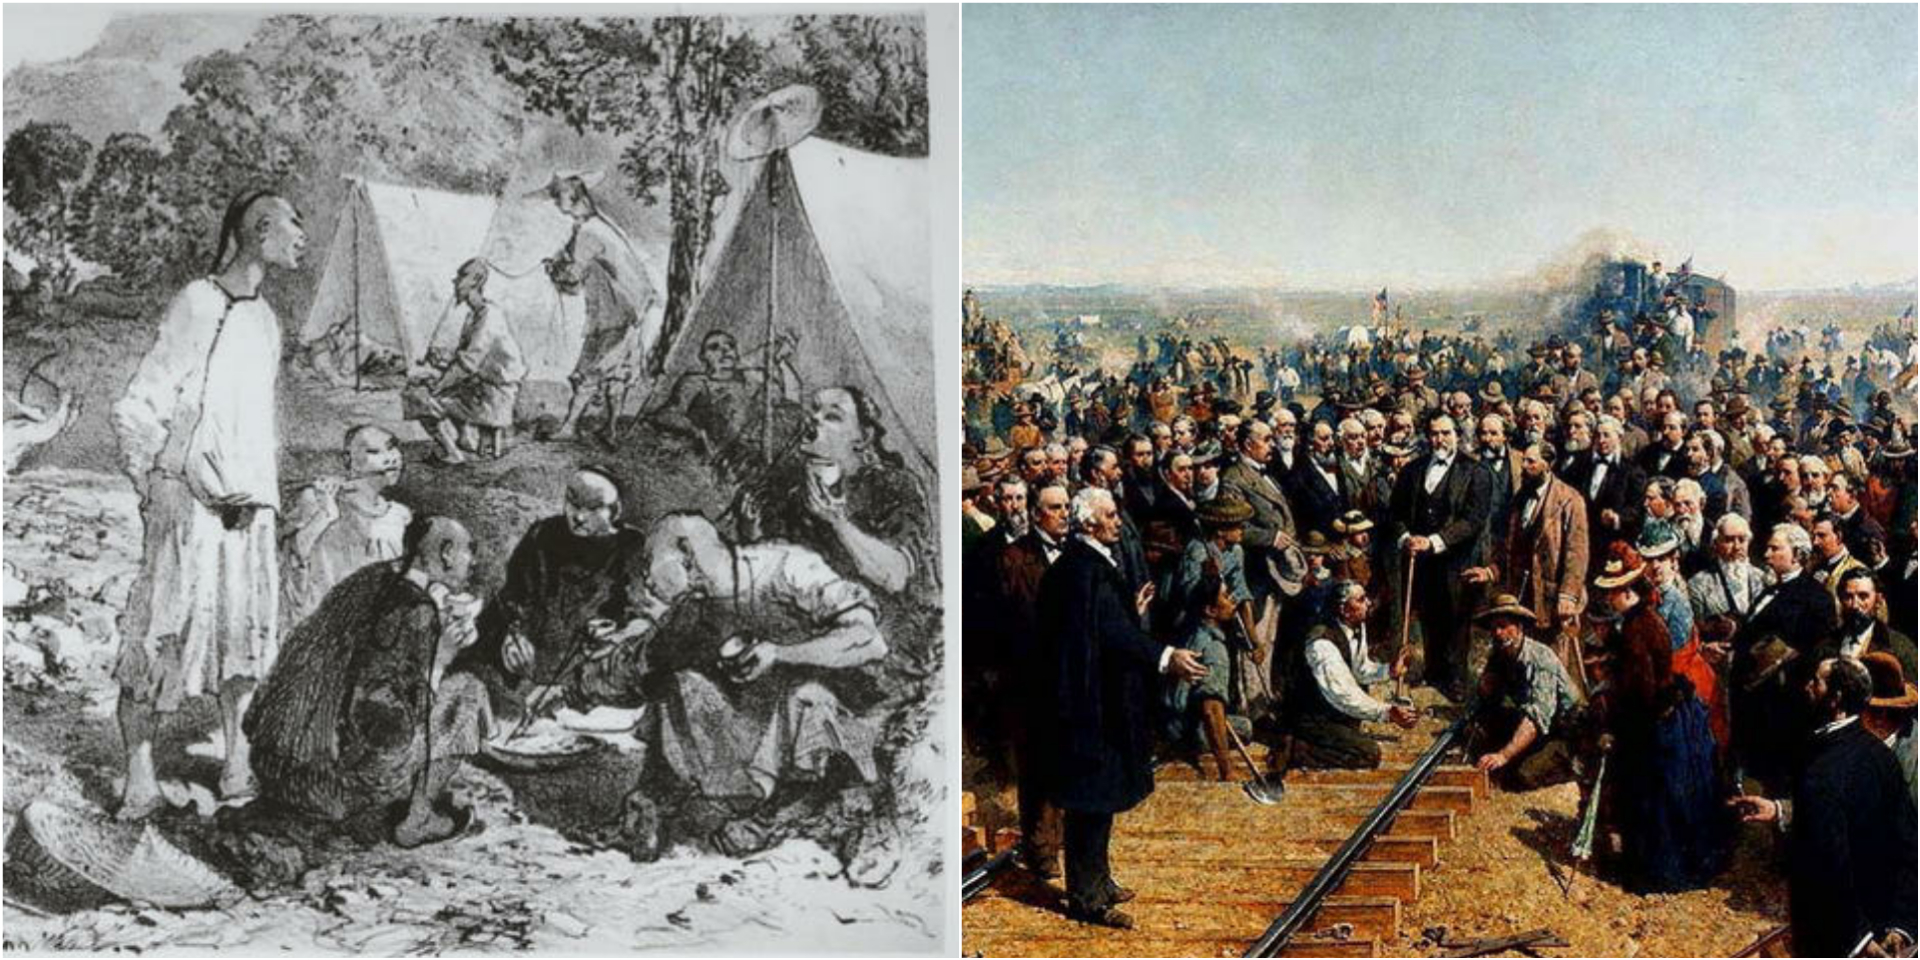 The Rock Springs Massacre Of 1885: When 28 Chinese Miners Were Slaughtered, Homes Burned